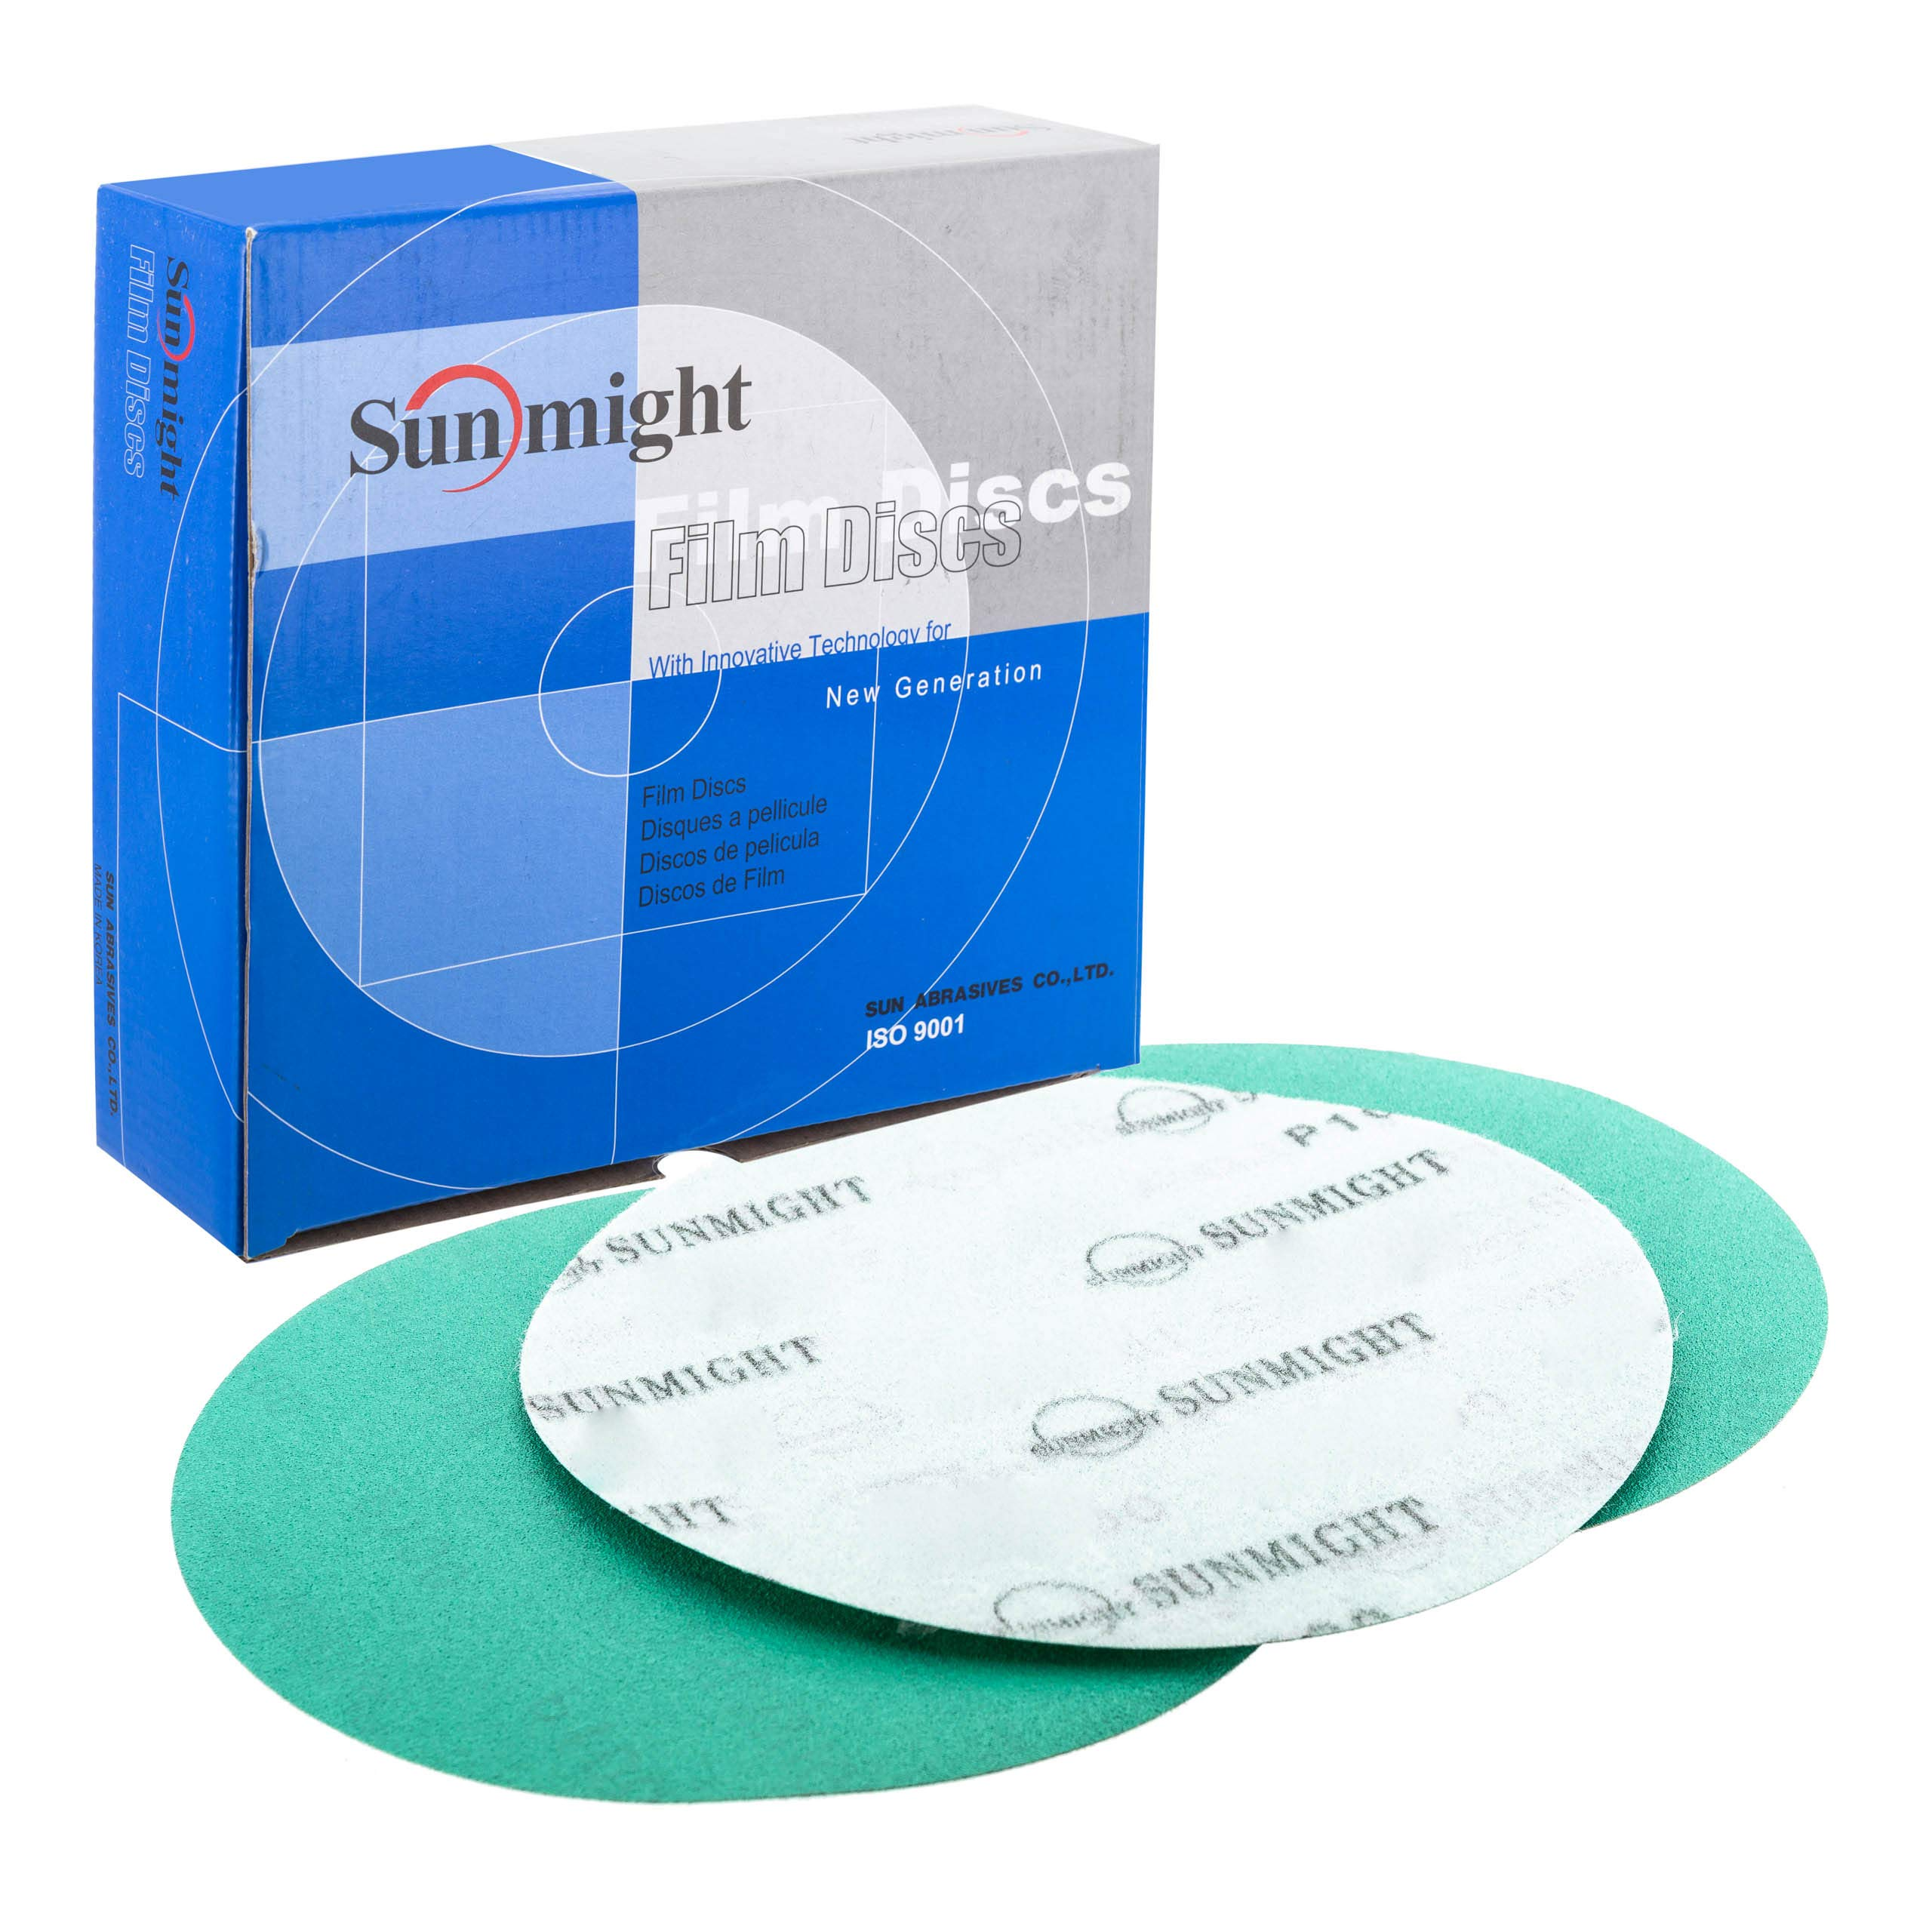 Sunmight 01606 1 Pack 8'' No Hole Velcro Disc (Film Grit 80) by Sunmight